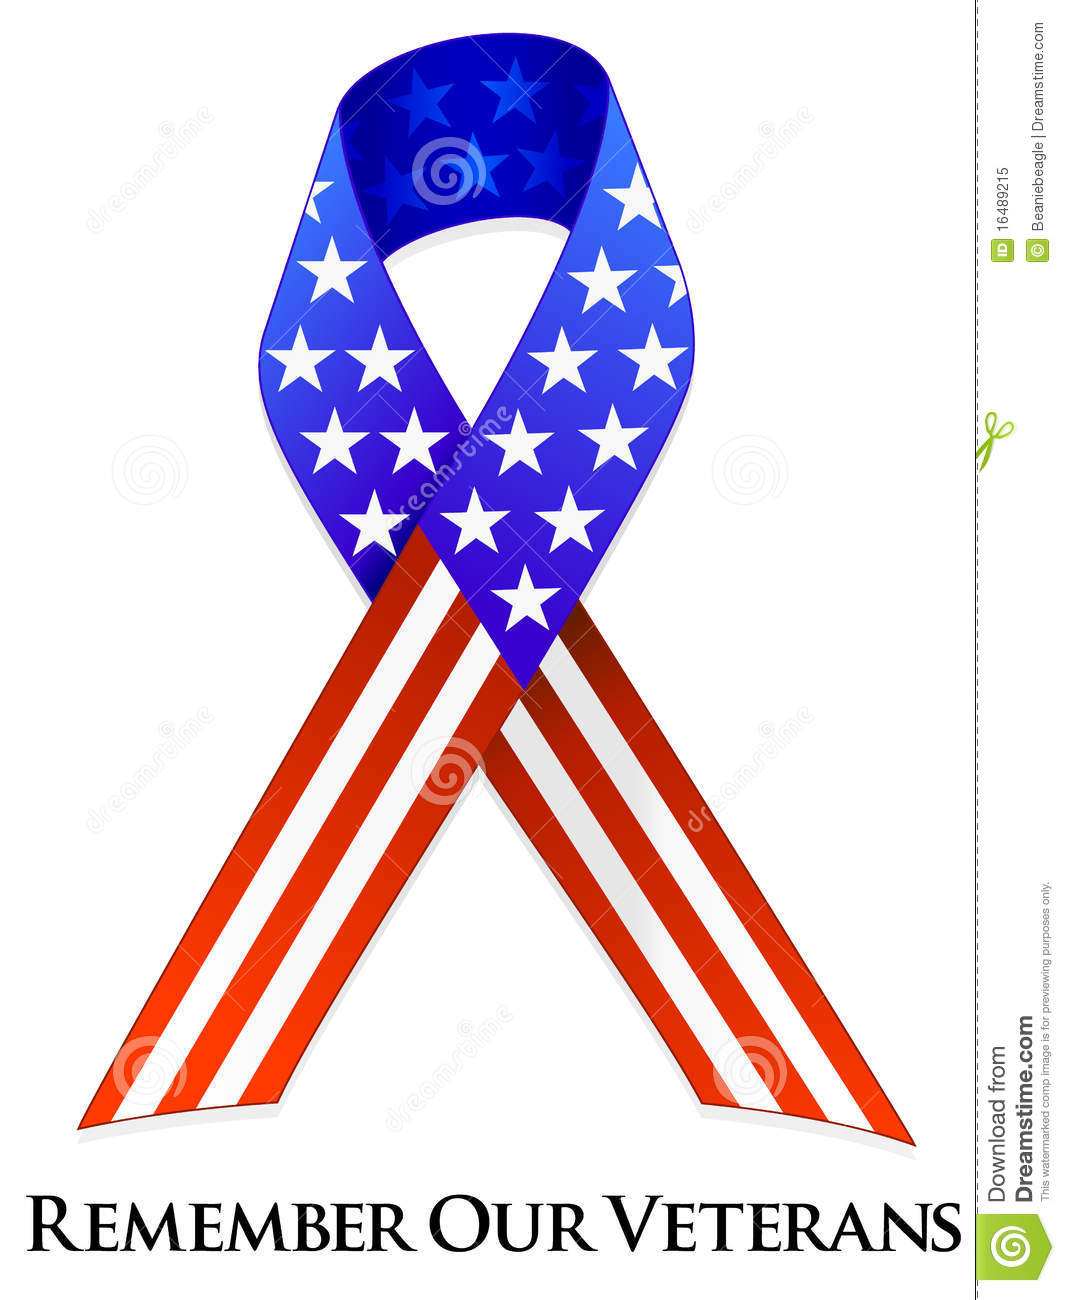 Memorial day ribbon clipart royalty free stock Veterans Day Ribbon Royalty Free Stock Photo - Image: 16489215 royalty free stock